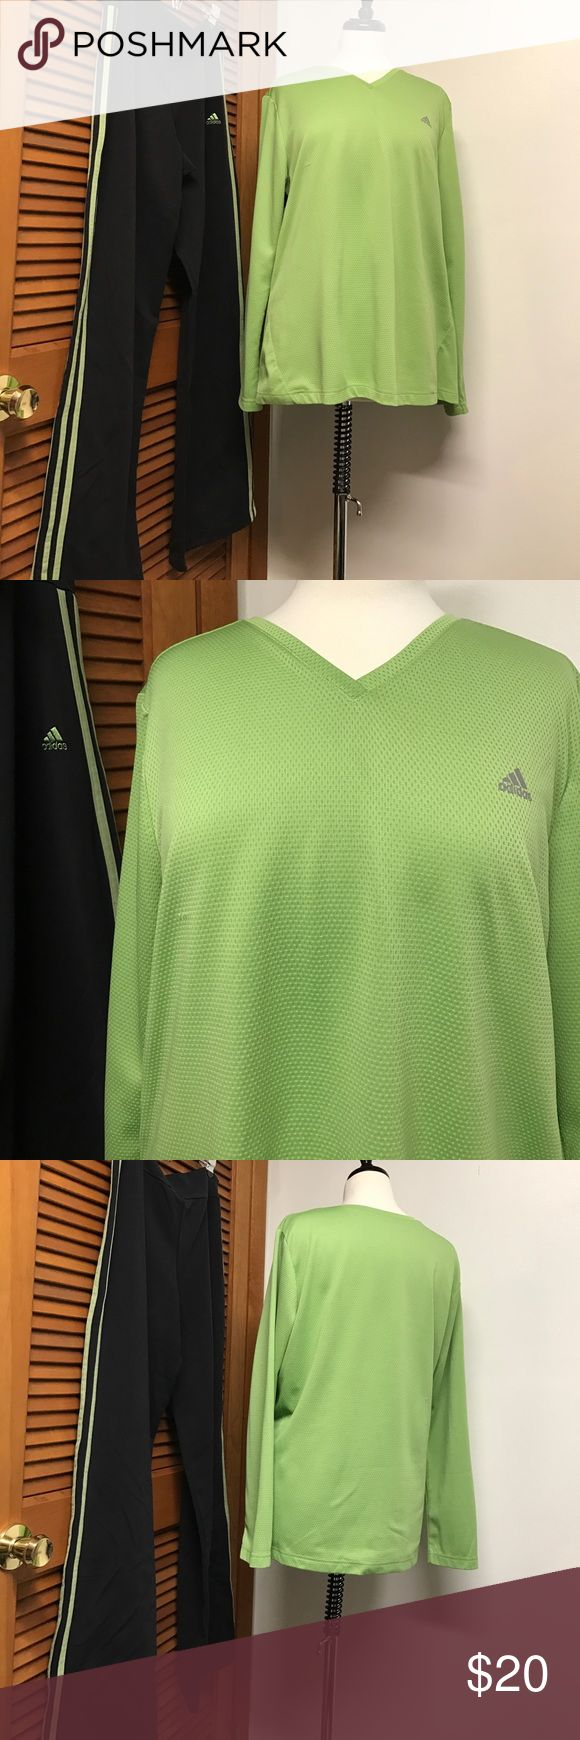 "Adidas Athletic Top and Pants Like New Adidas Athletic V neck Top and Pants. Pants black with double lime green side strips and long sleeve top is lime green. Measurements are laying flat across shoulder to shoulder is 19"", underarms is 24.5"", at Hem is 24"", and 28"" long. Arm inseam is 18"". The pants waist is 16.5 and inseam pant legs is 33"". See pictures for fabric and care. Adidas Pants Track Pants & Joggers"